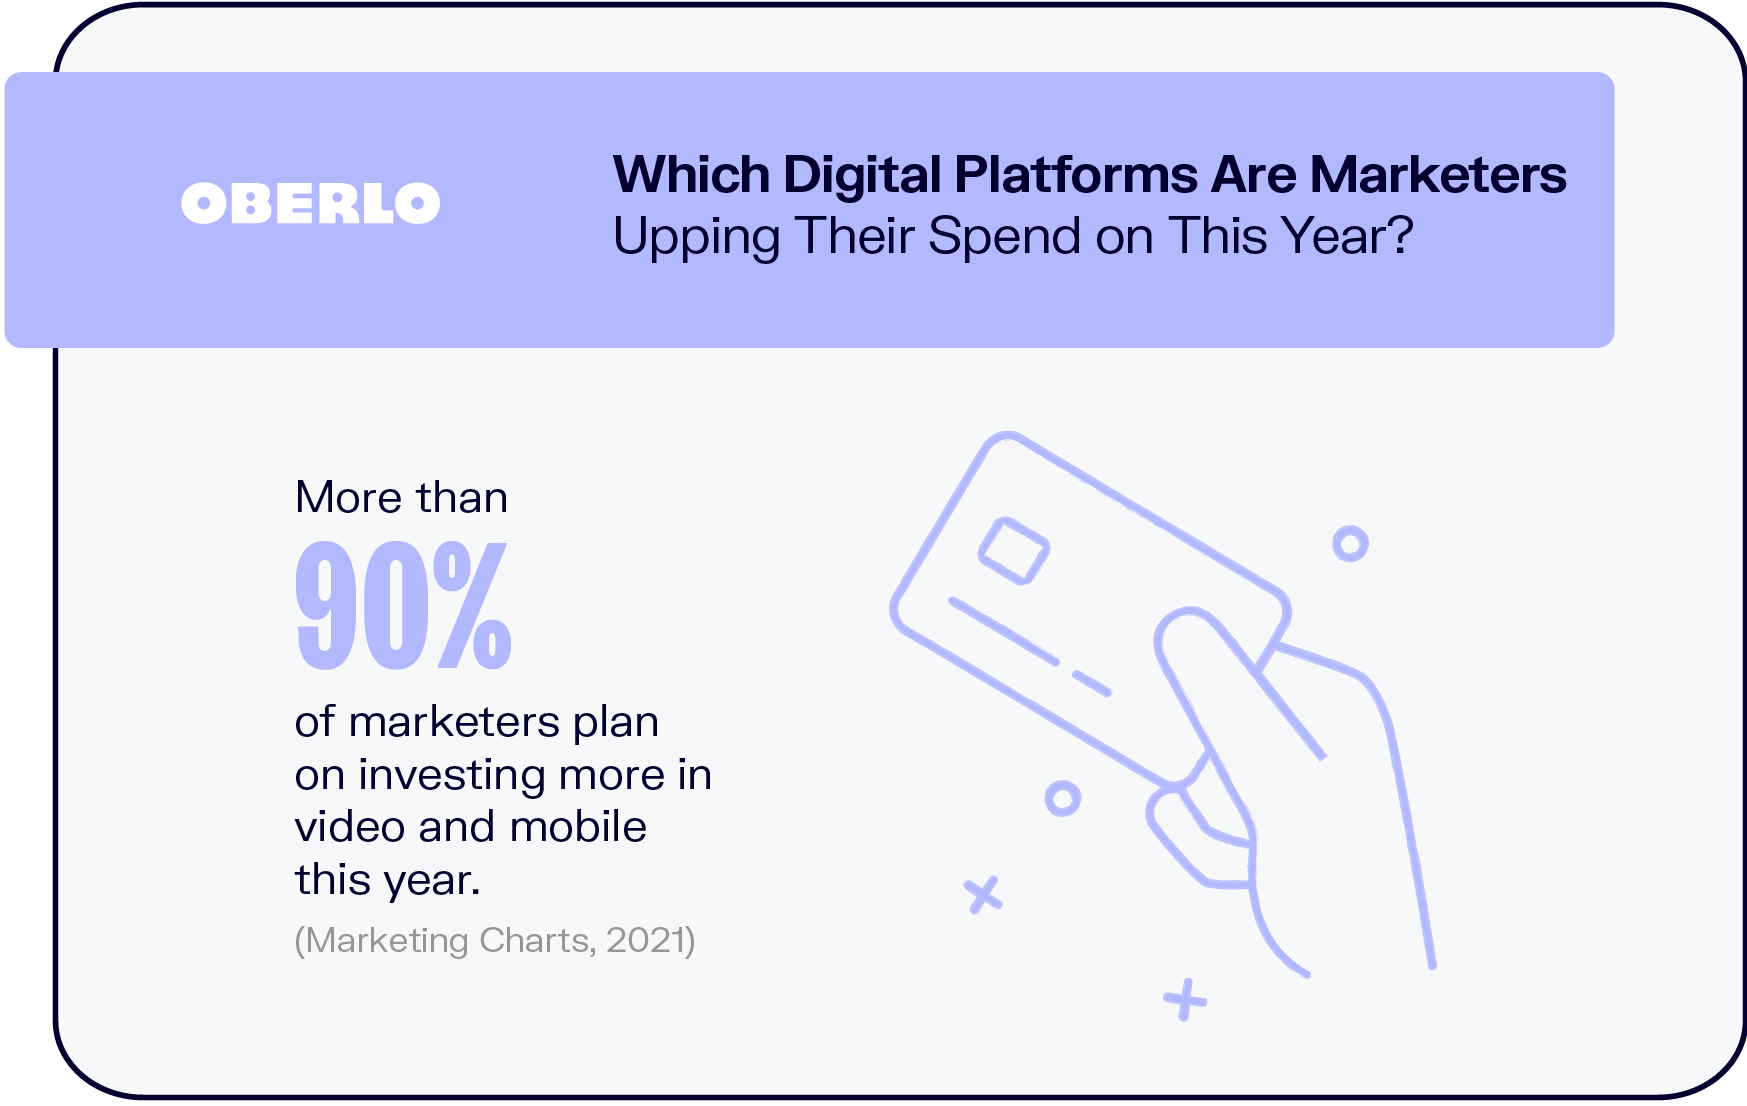 Which Digital Platforms Are Marketers Upping Their Spend on This Year?